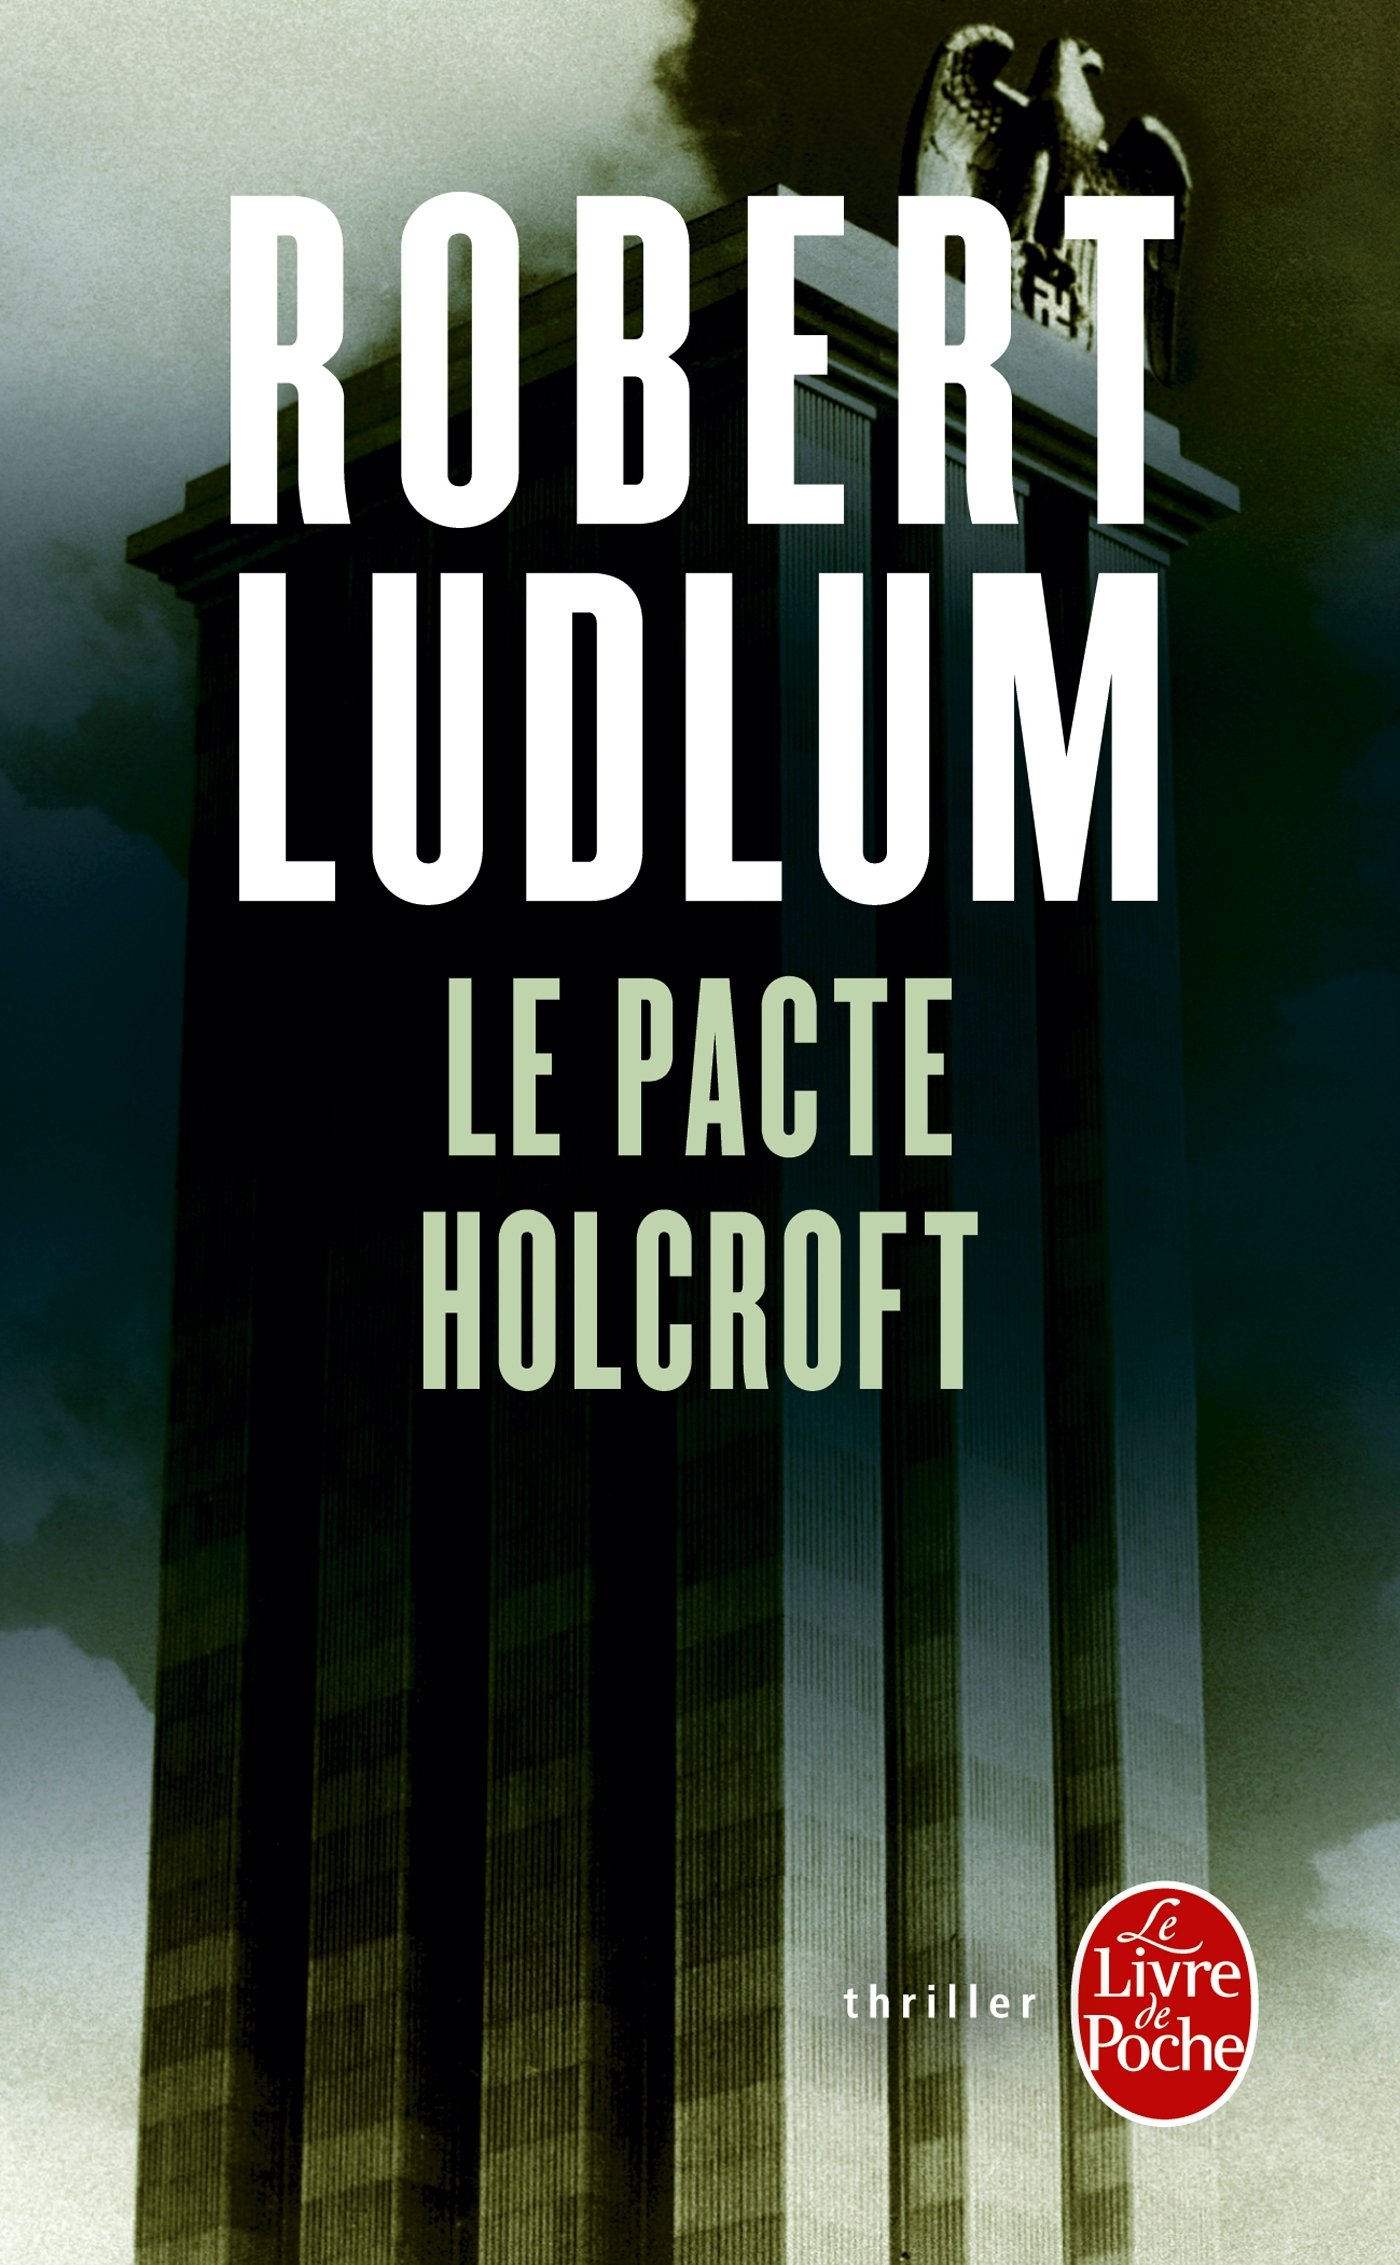 Le Pacte Holcroft (Thrillers) (French Edition)